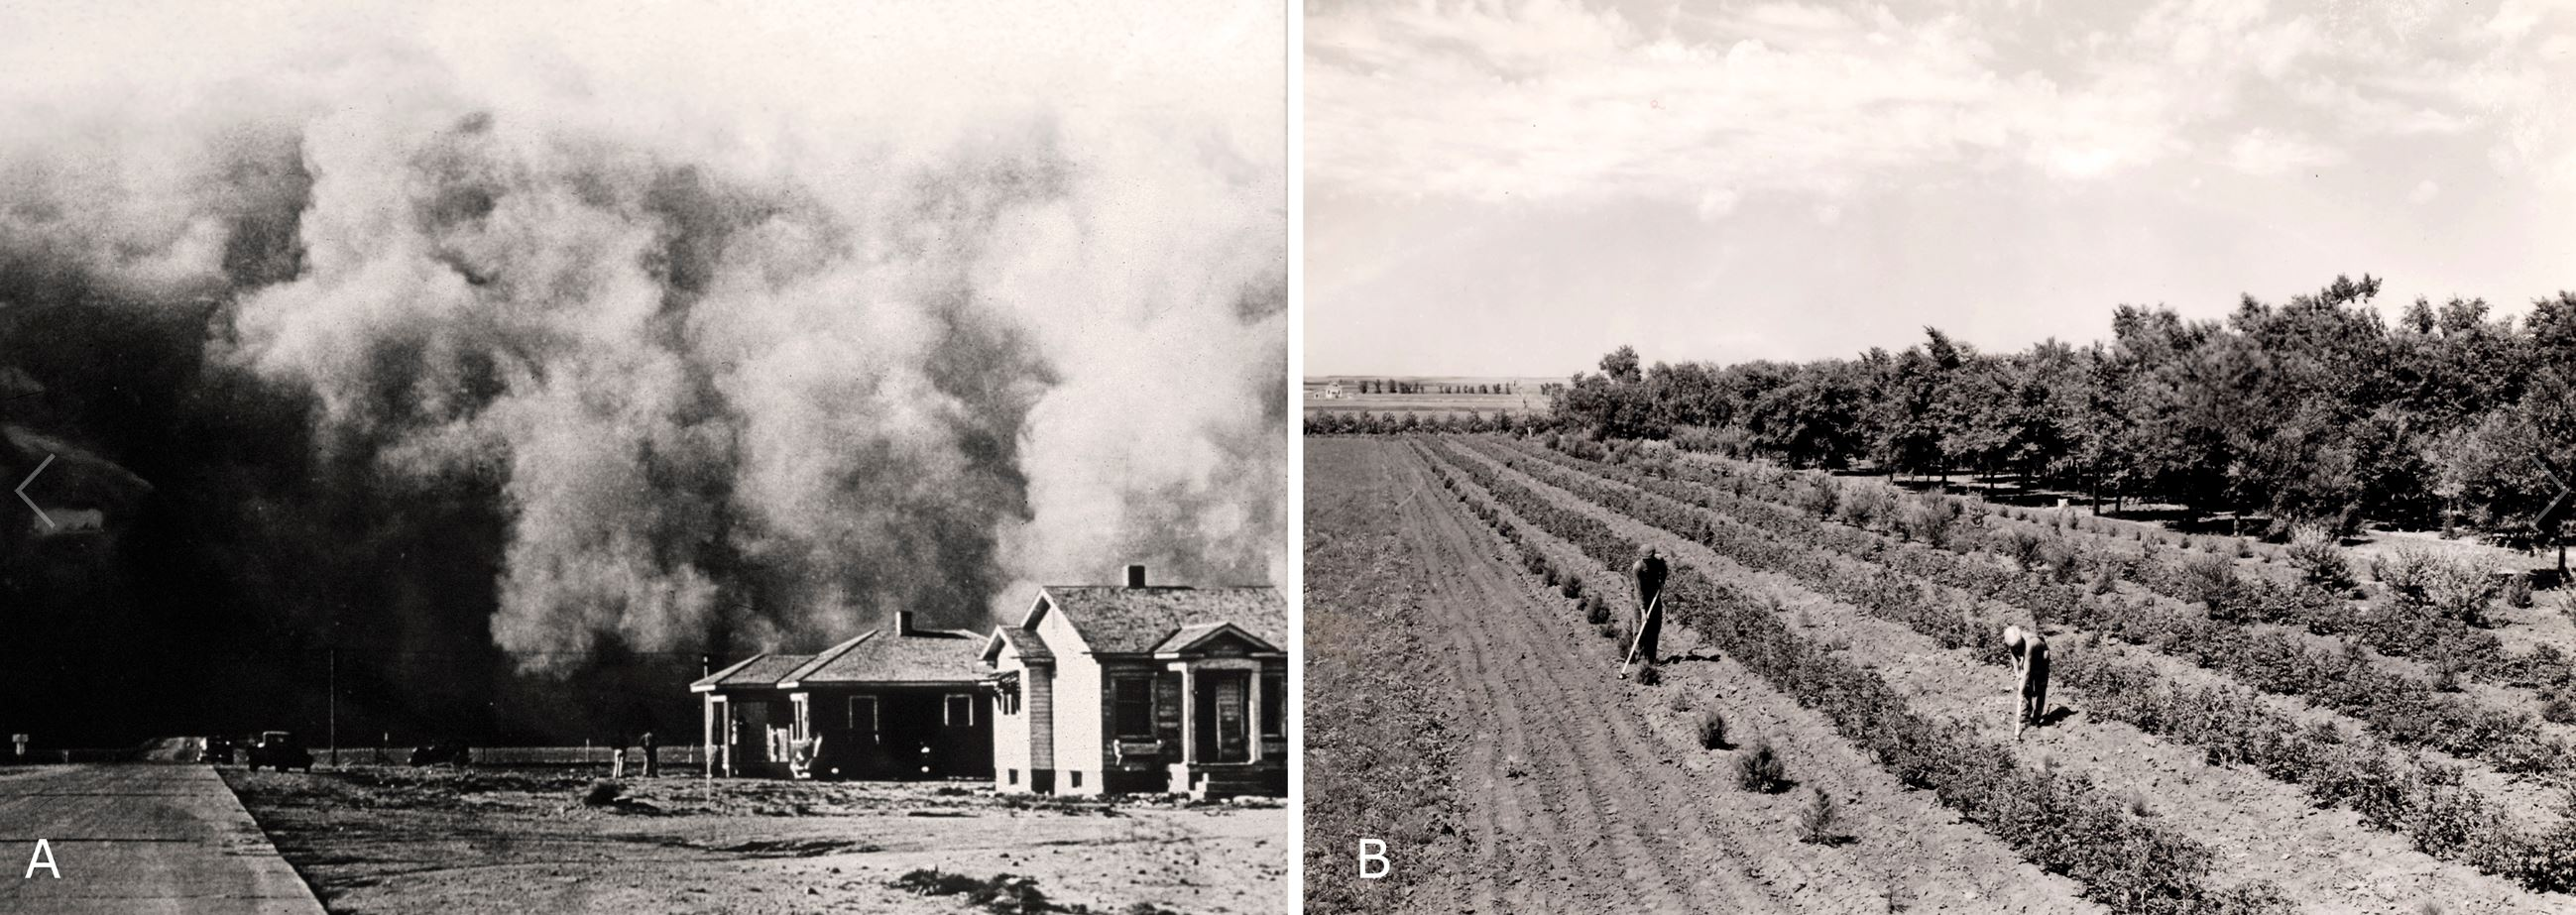 Figure 2. (A) A giant dust storm rolls across eastern Colorado during the 1930s. (B) Landowners tending to their windbreak planted with the Prairie States Forestry Project. Photos by the USDA, Natural Resources Conservation Service (A) and Forest Service (B).